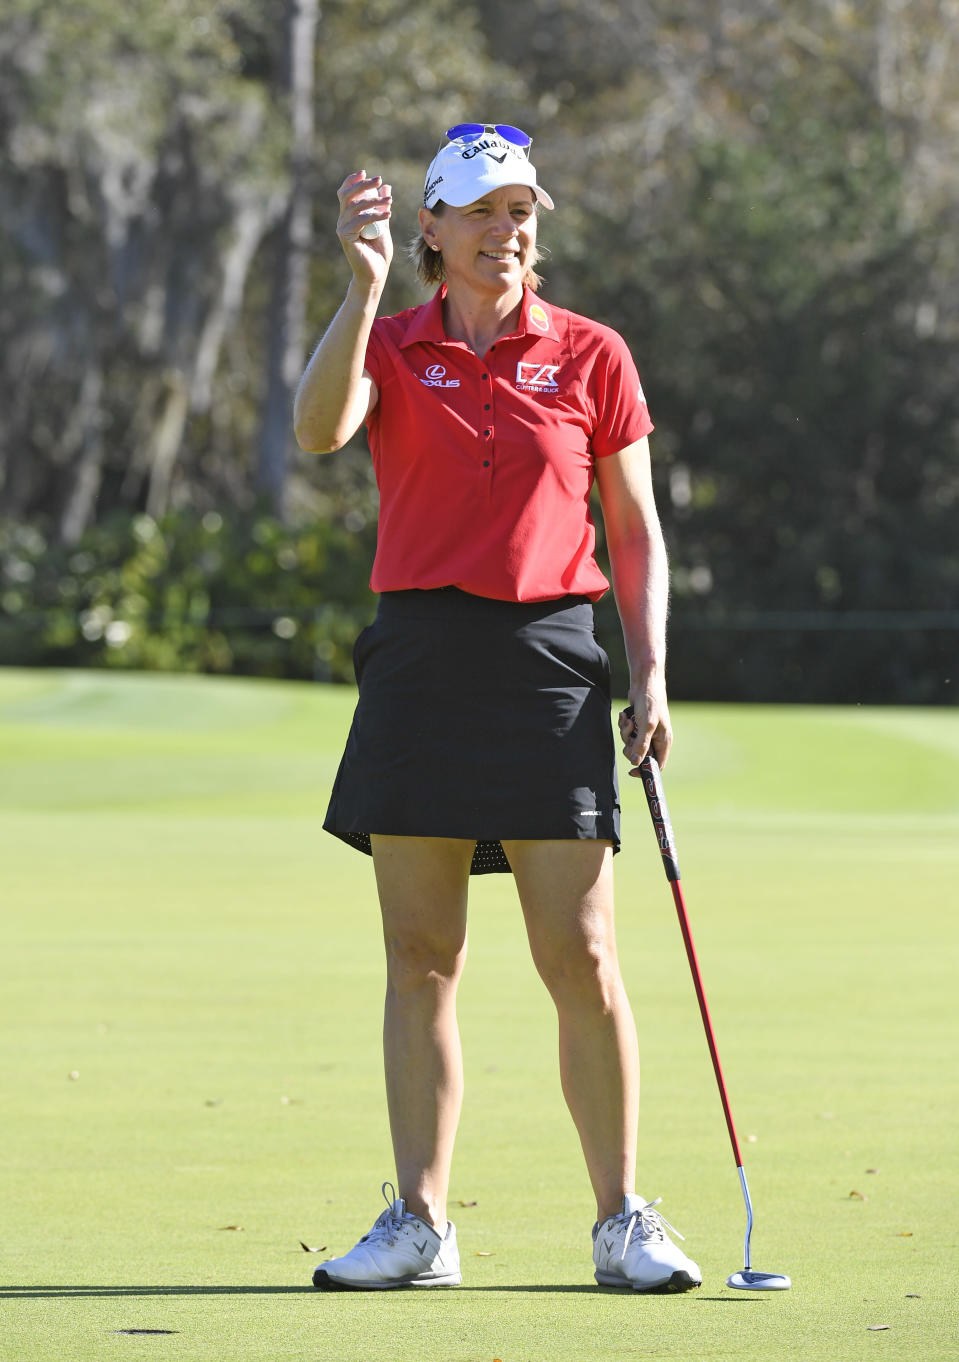 Annika Sorenstam of Sweden dressed in red and black waves to fans on the putting green during the final round of the Gainbridge LPGA golf tournament Sunday, Feb. 28, 2021, in Orlando, Fla. (AP Photo/Stan Badz)